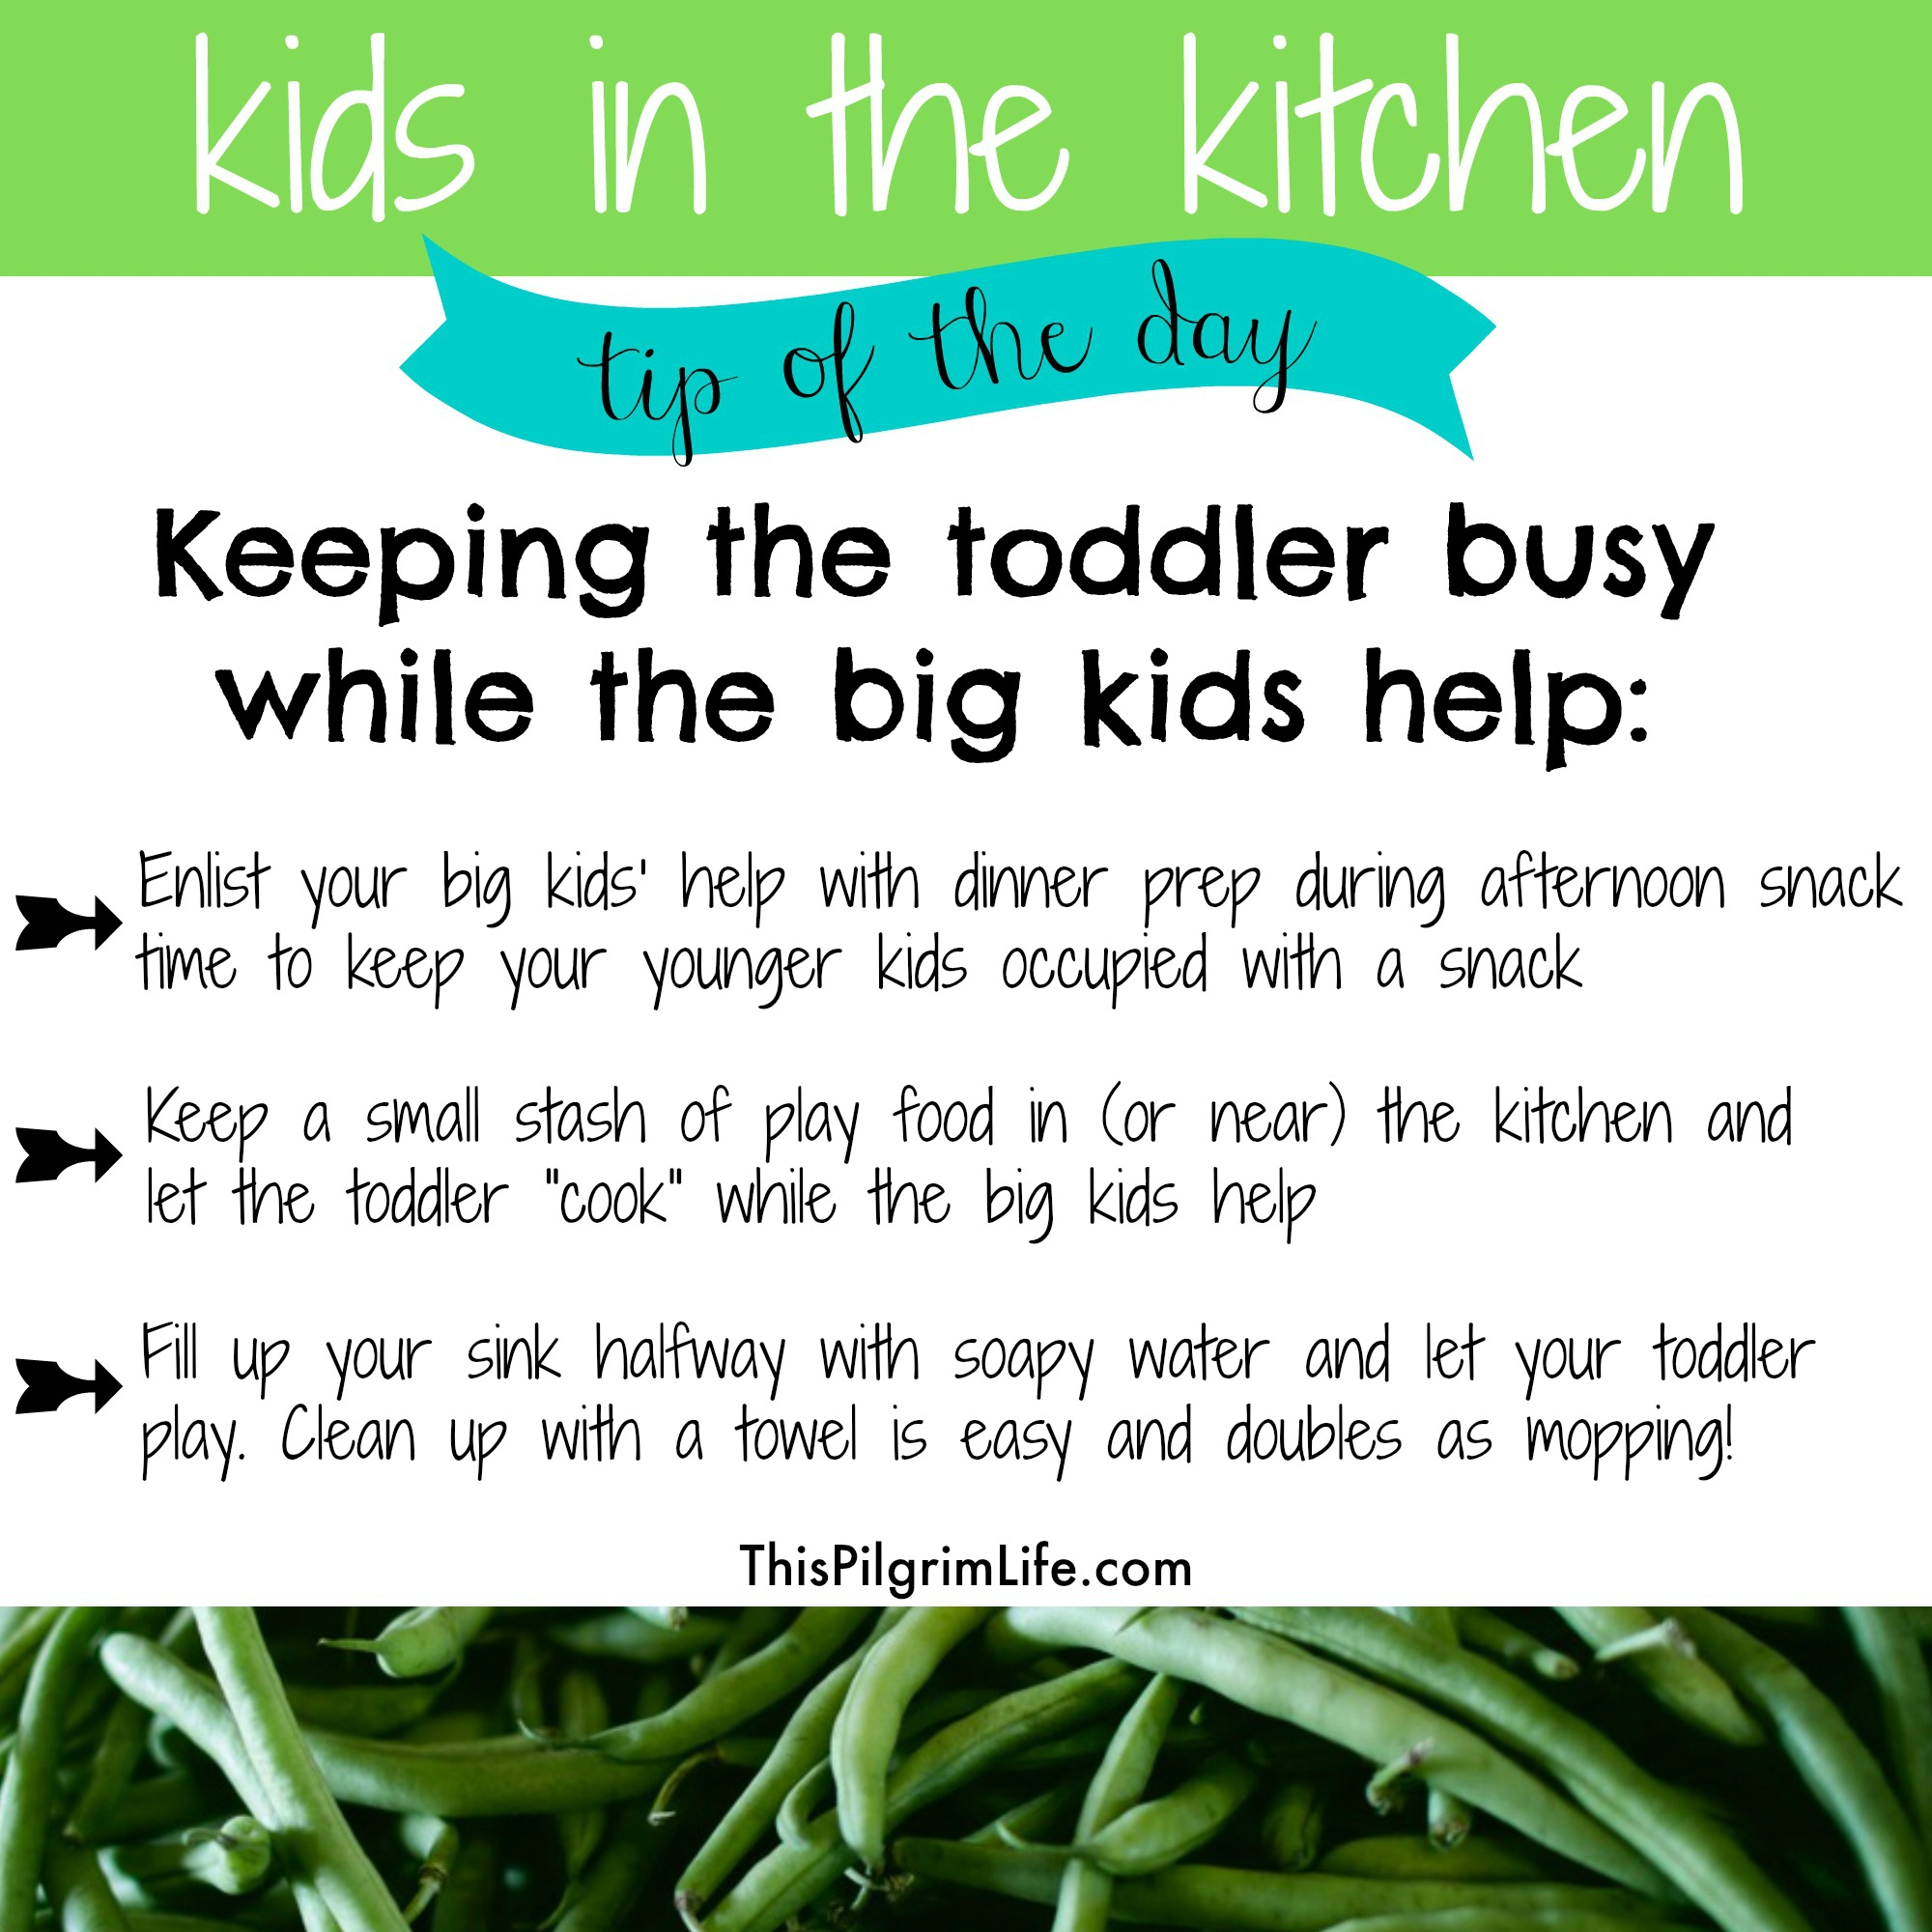 Kids in the kitchen-- what to do with the toddler while the big kids help.